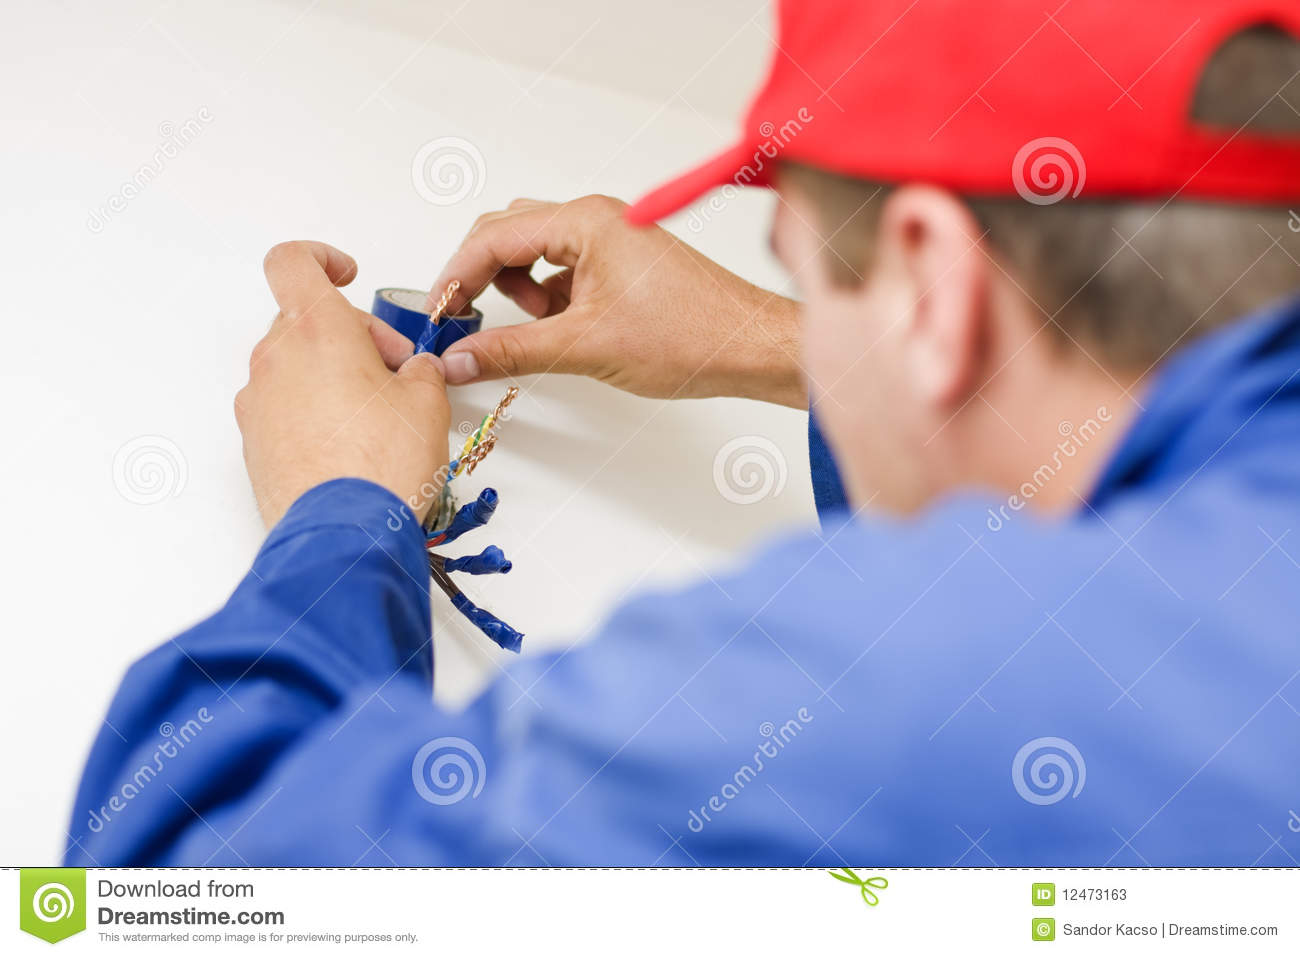 Handyman working